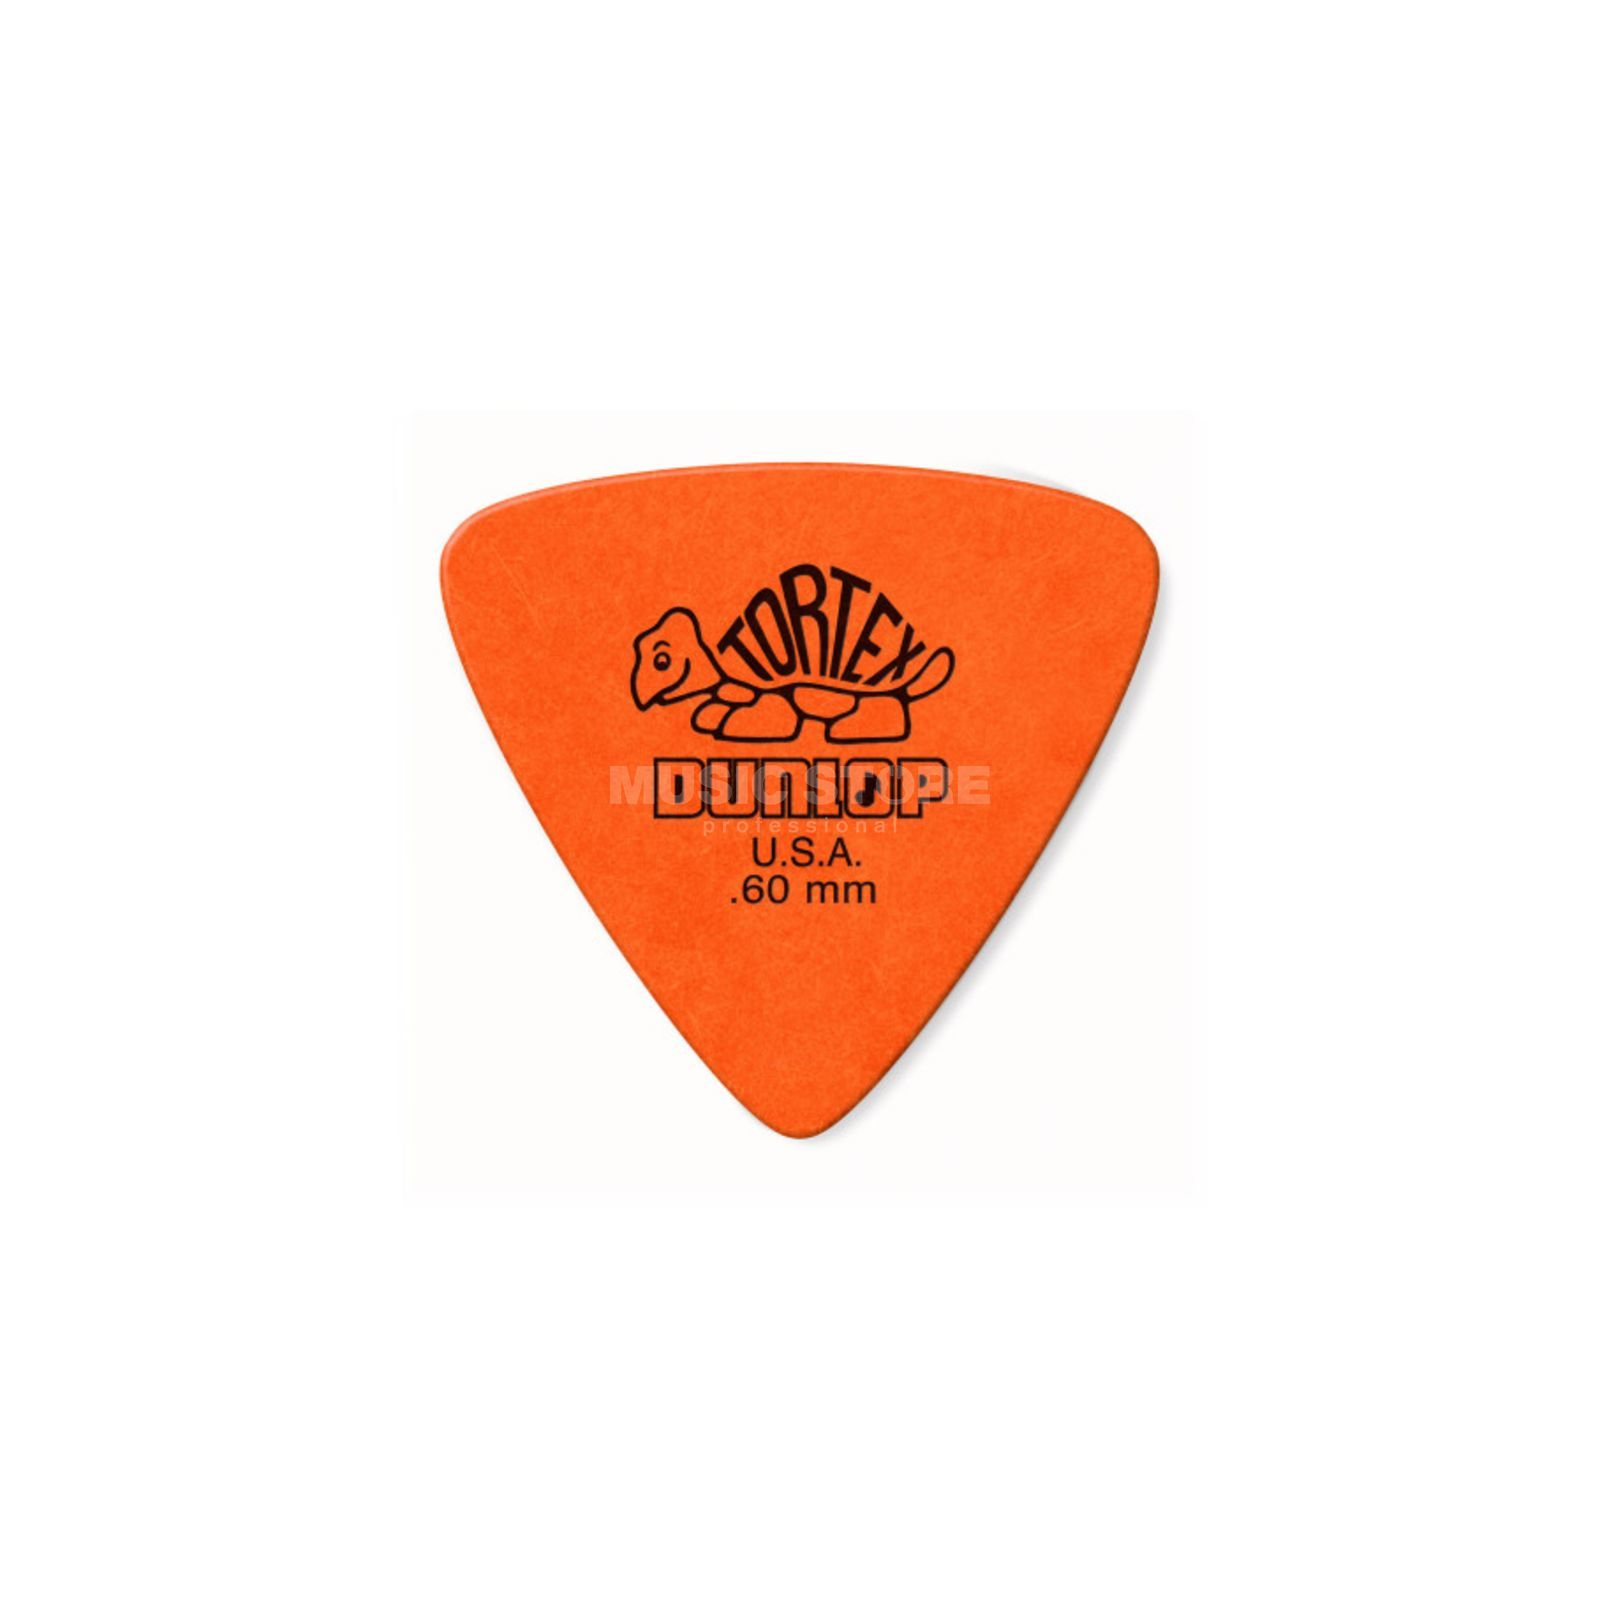 Dunlop Tortex Triangle Plektren 0,60 6er Set, orange Produktbild